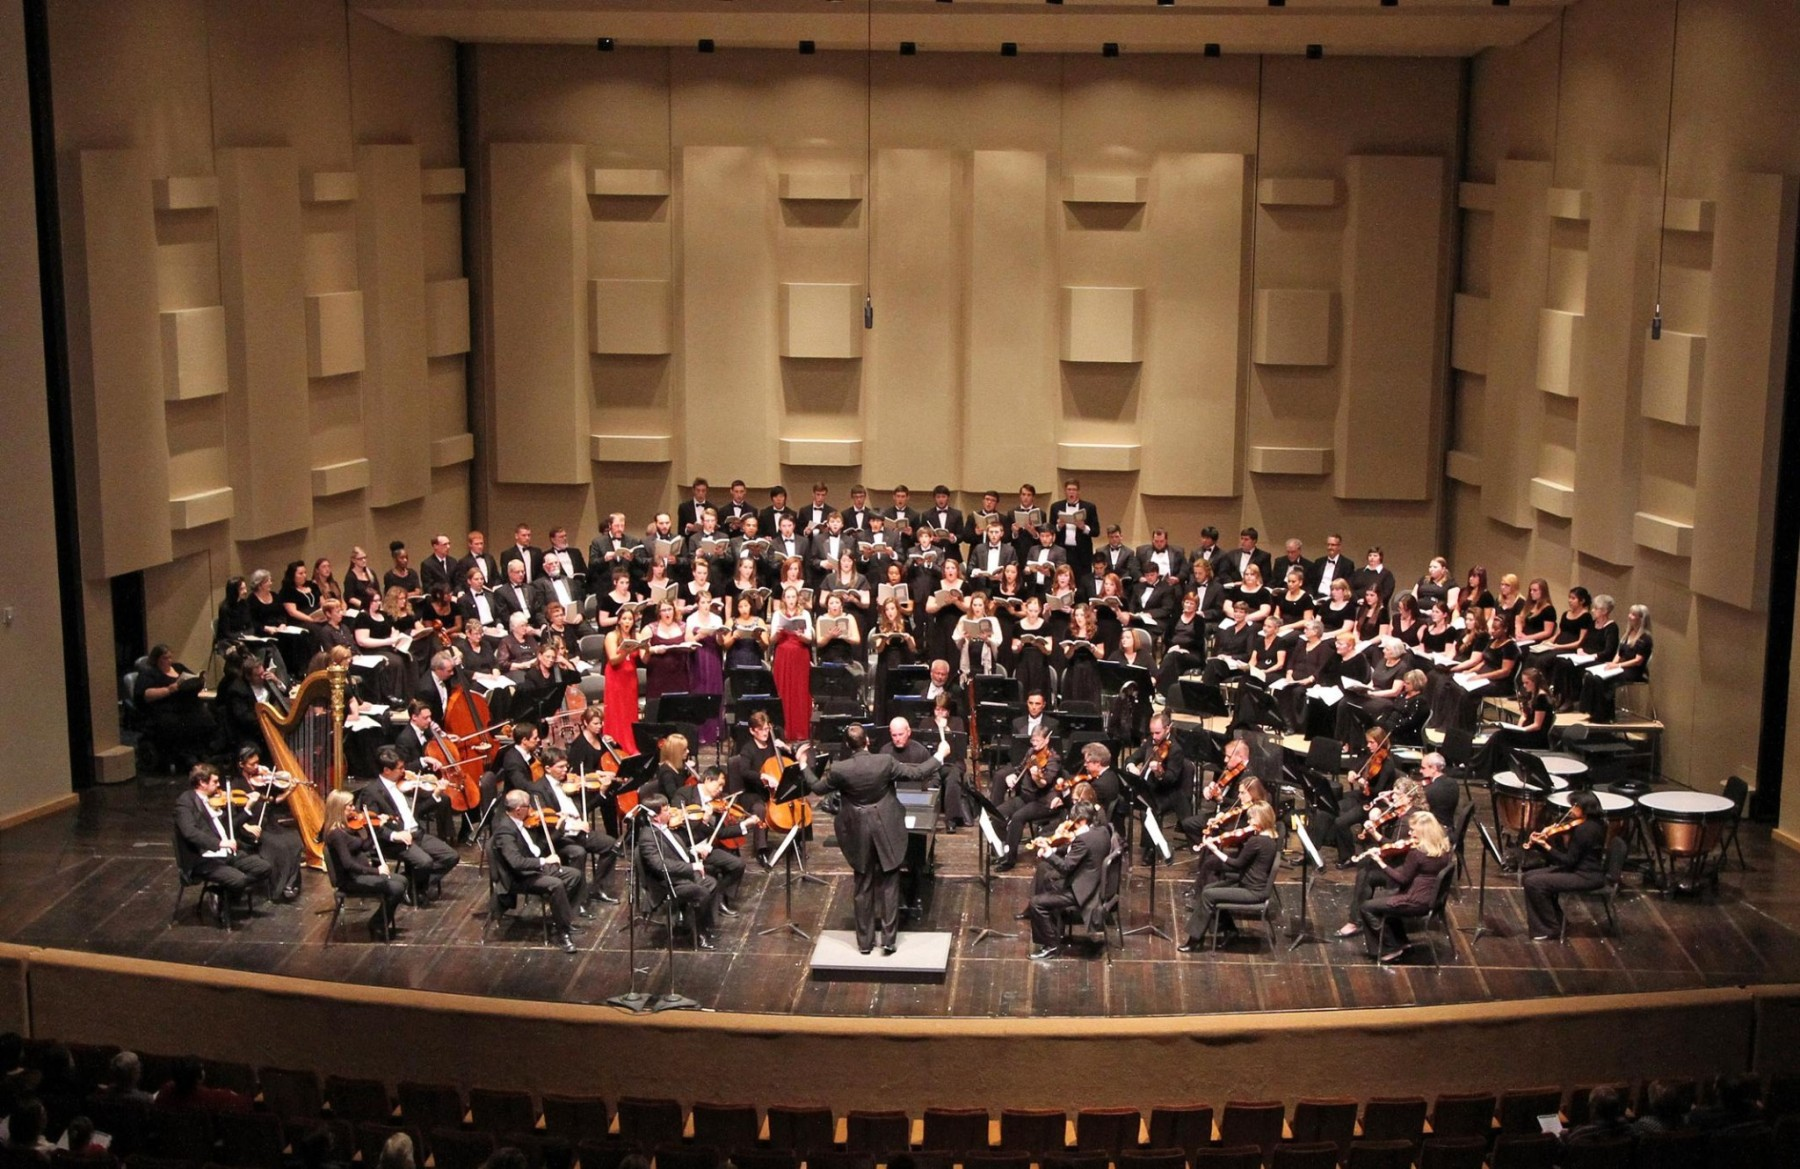 Tarleton State University's choirs, the Cross Timbers Civic Chorale and members of the Forth Worth Symphony Orchestra will combine for the 35th annual presentation of Handel's Messiah on Dec. 6.